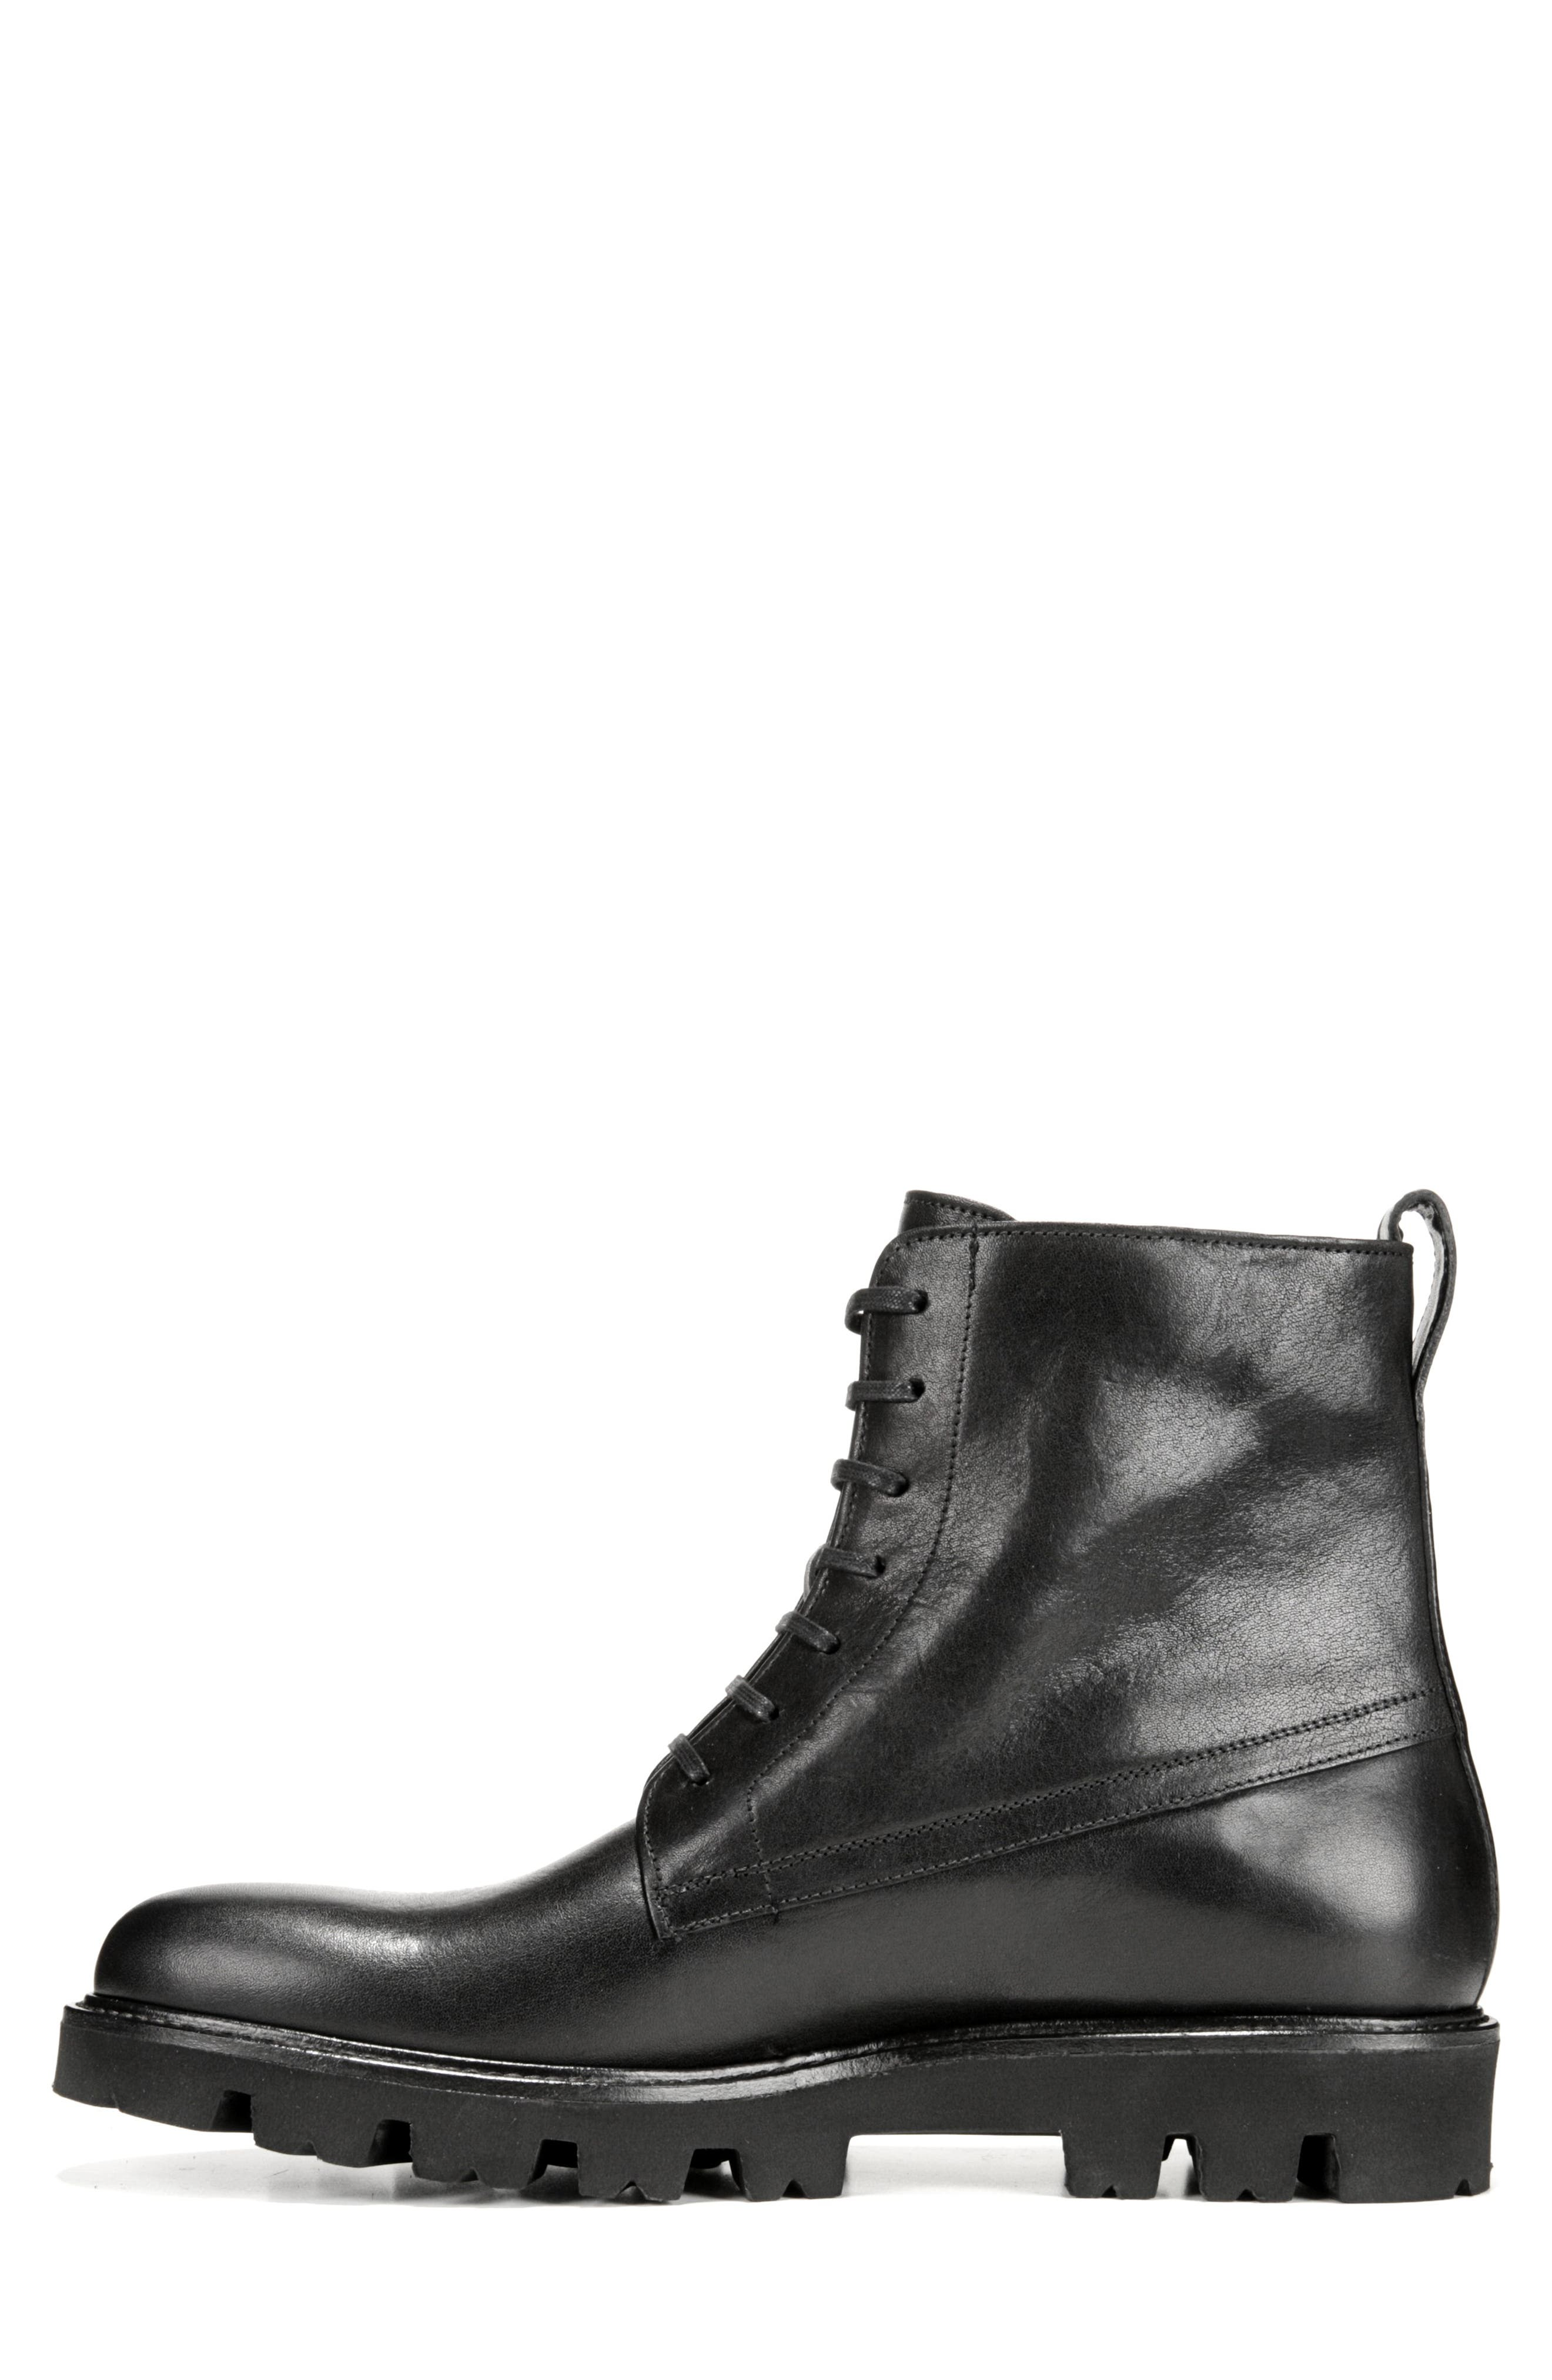 Commander Plain Toe Boot,                             Alternate thumbnail 8, color,                             Black